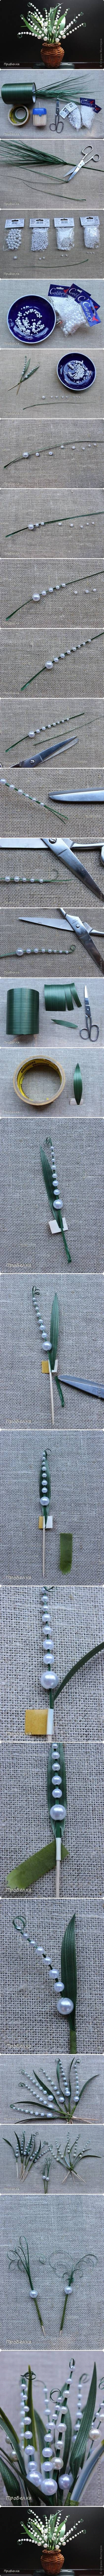 How to make Lily of the Valley step by step DIY tutorial instructions